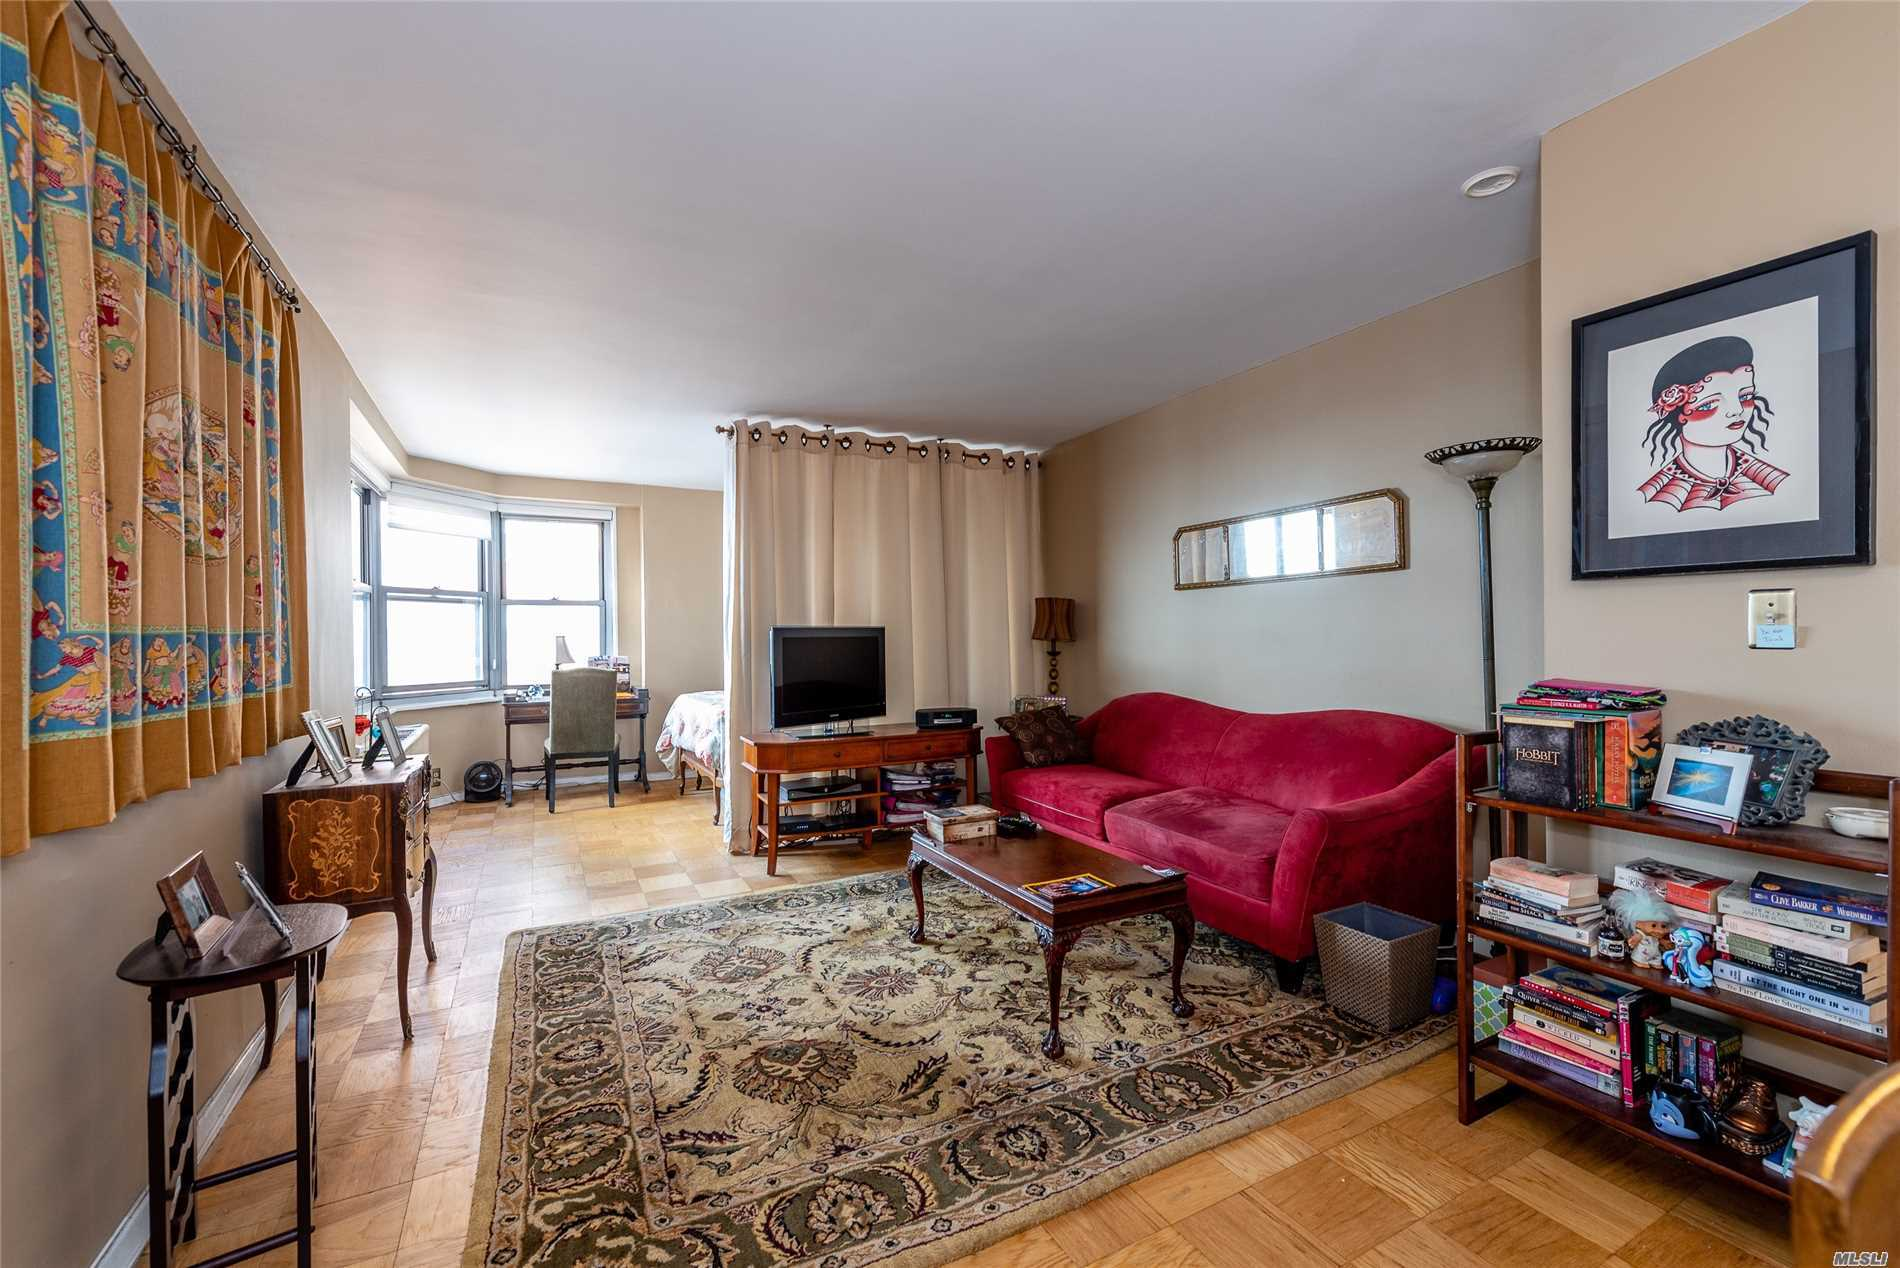 Spectacular Views Of Lower Manhattan And Forest Hills Gardens From This Sun Drenched Studio. Gerard Towers Offers A 24 Hr Doorman, Seasonal Pool, A Fitness Center And Immediate Valet Parking. Just Steps To Express Transportation, L.I.R.R And Around The Corner From Trendy Austin St.